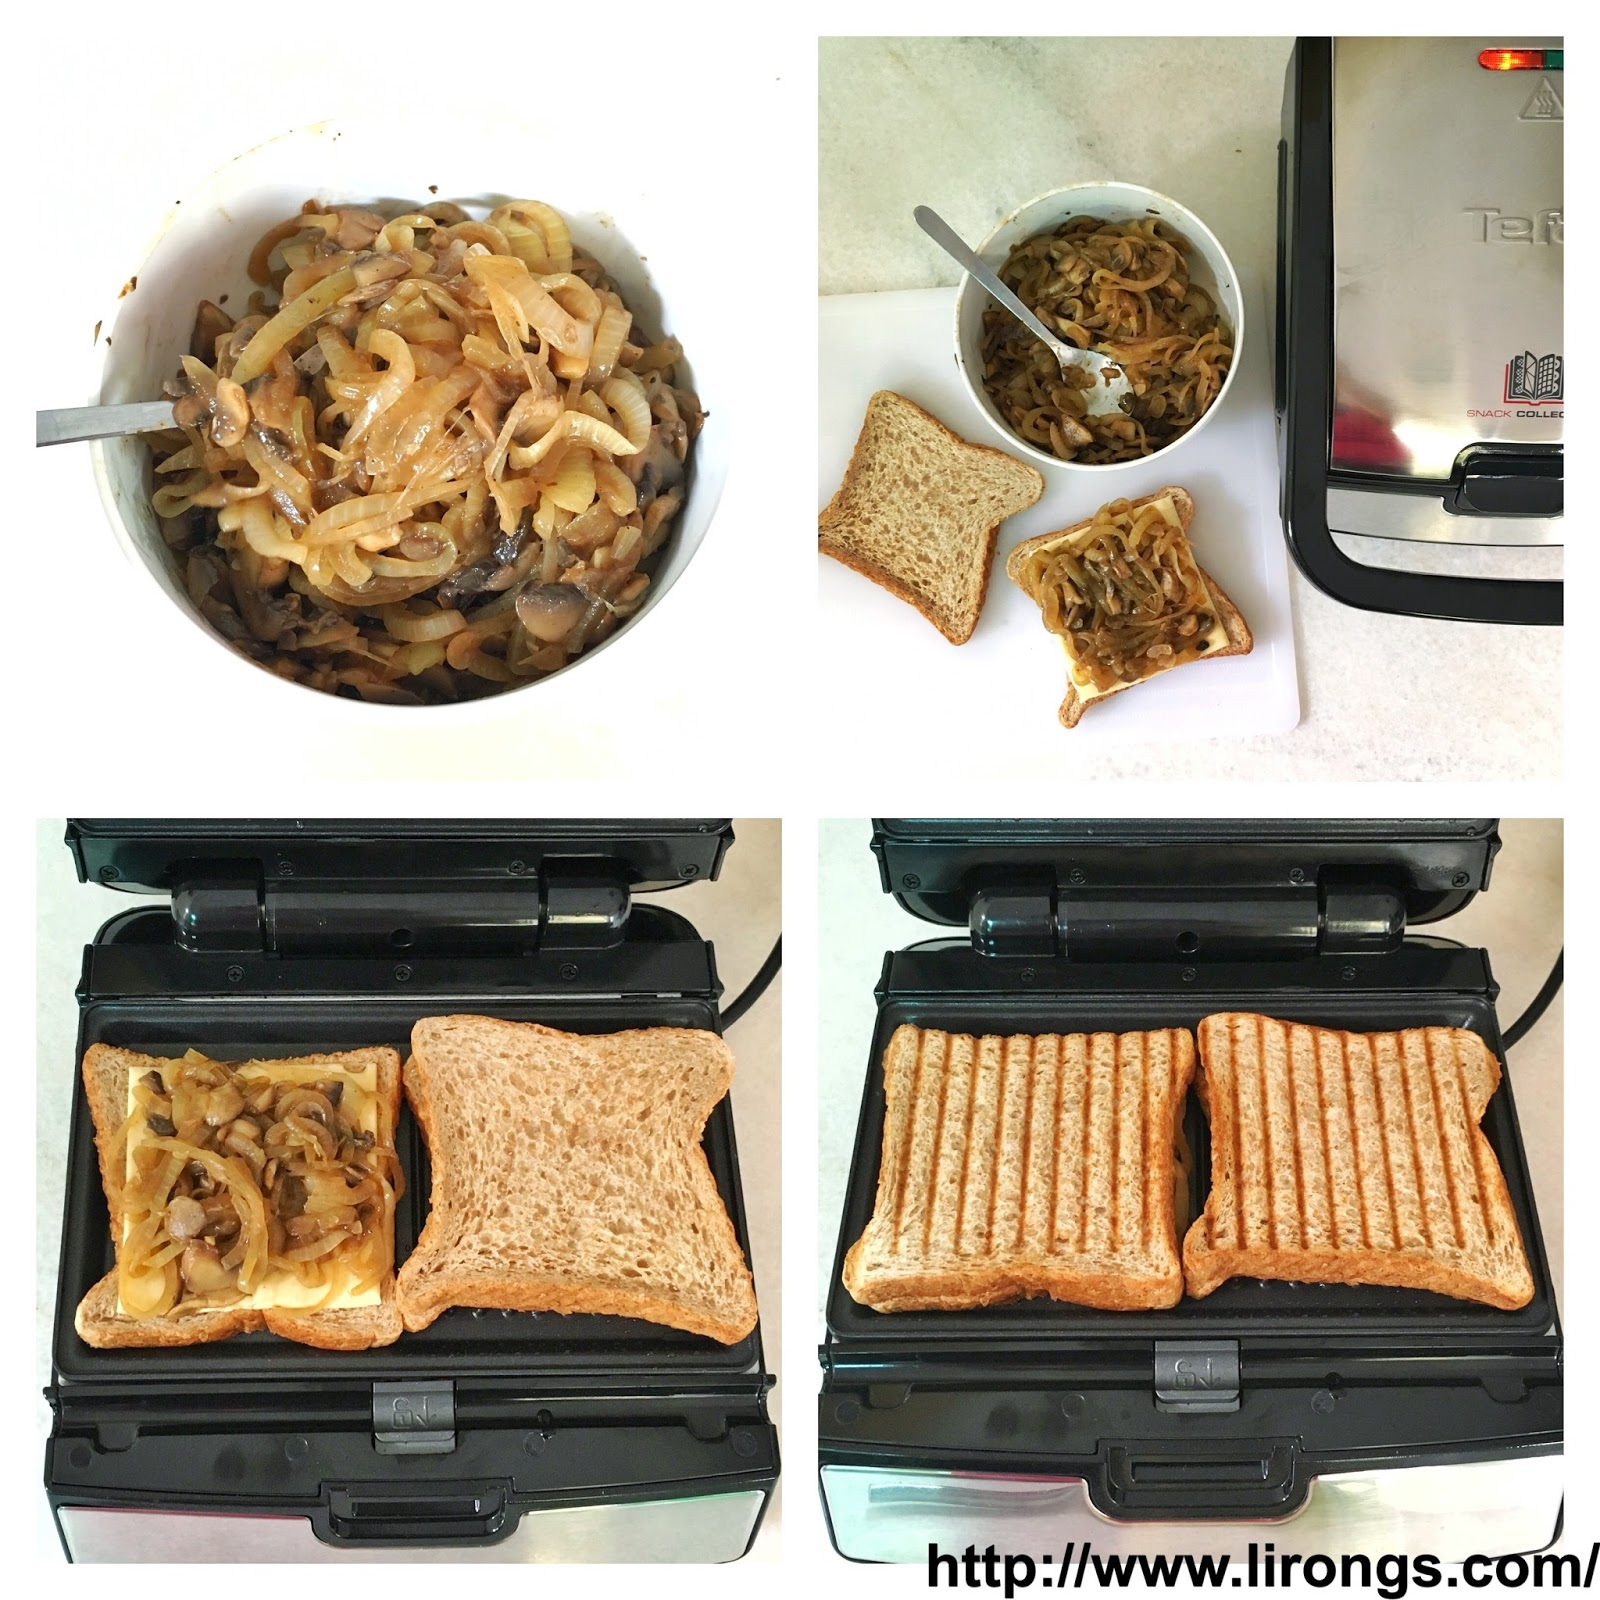 Lirong a singapore food and lifestyle blog review tefal snack collection recipes - Gaufrier tefal snack collection ...